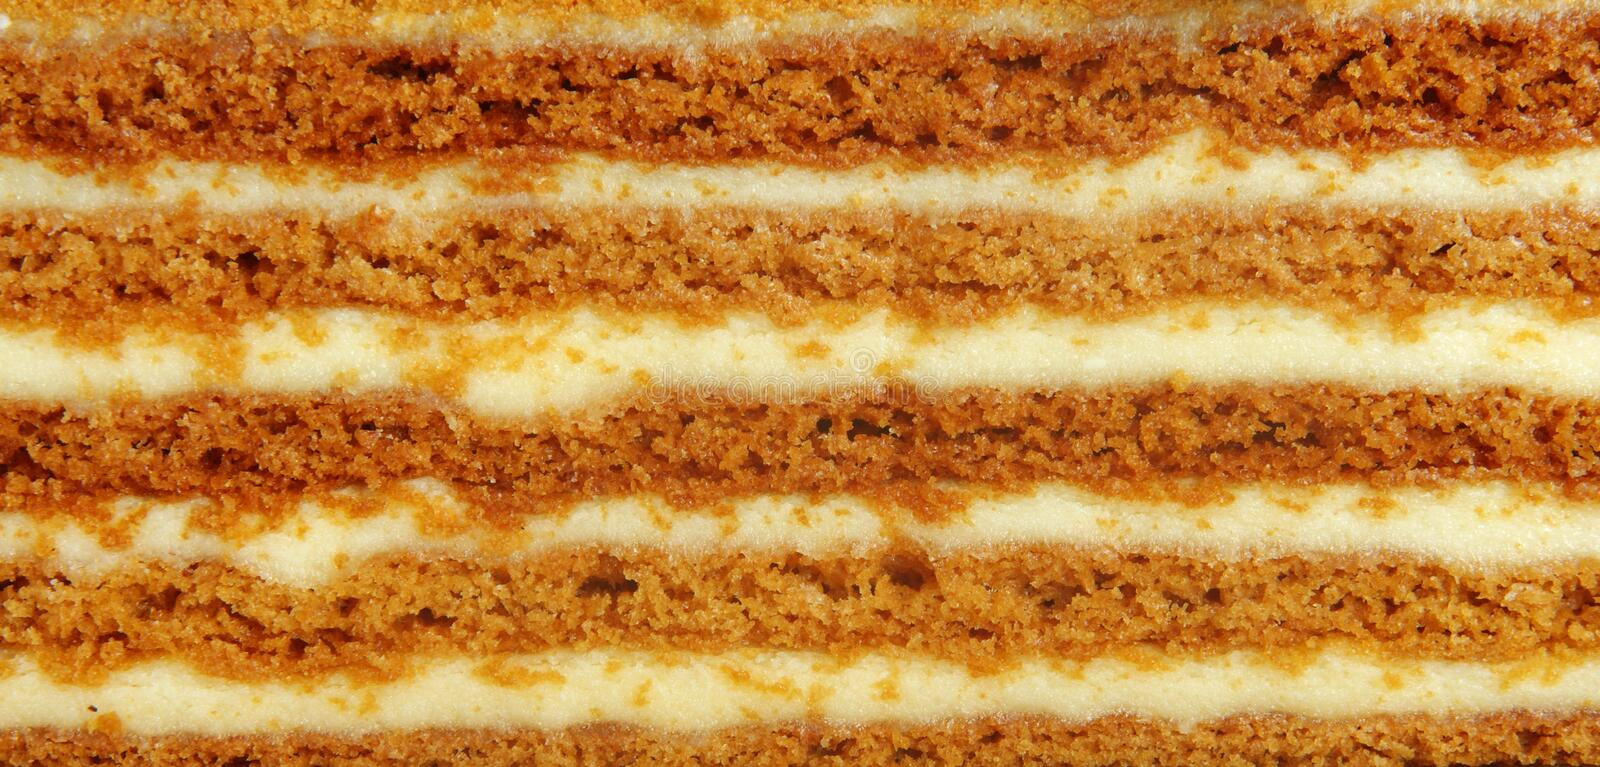 Download Cream cake stock image. Image of calorie, decorated, appetizing - 24526739